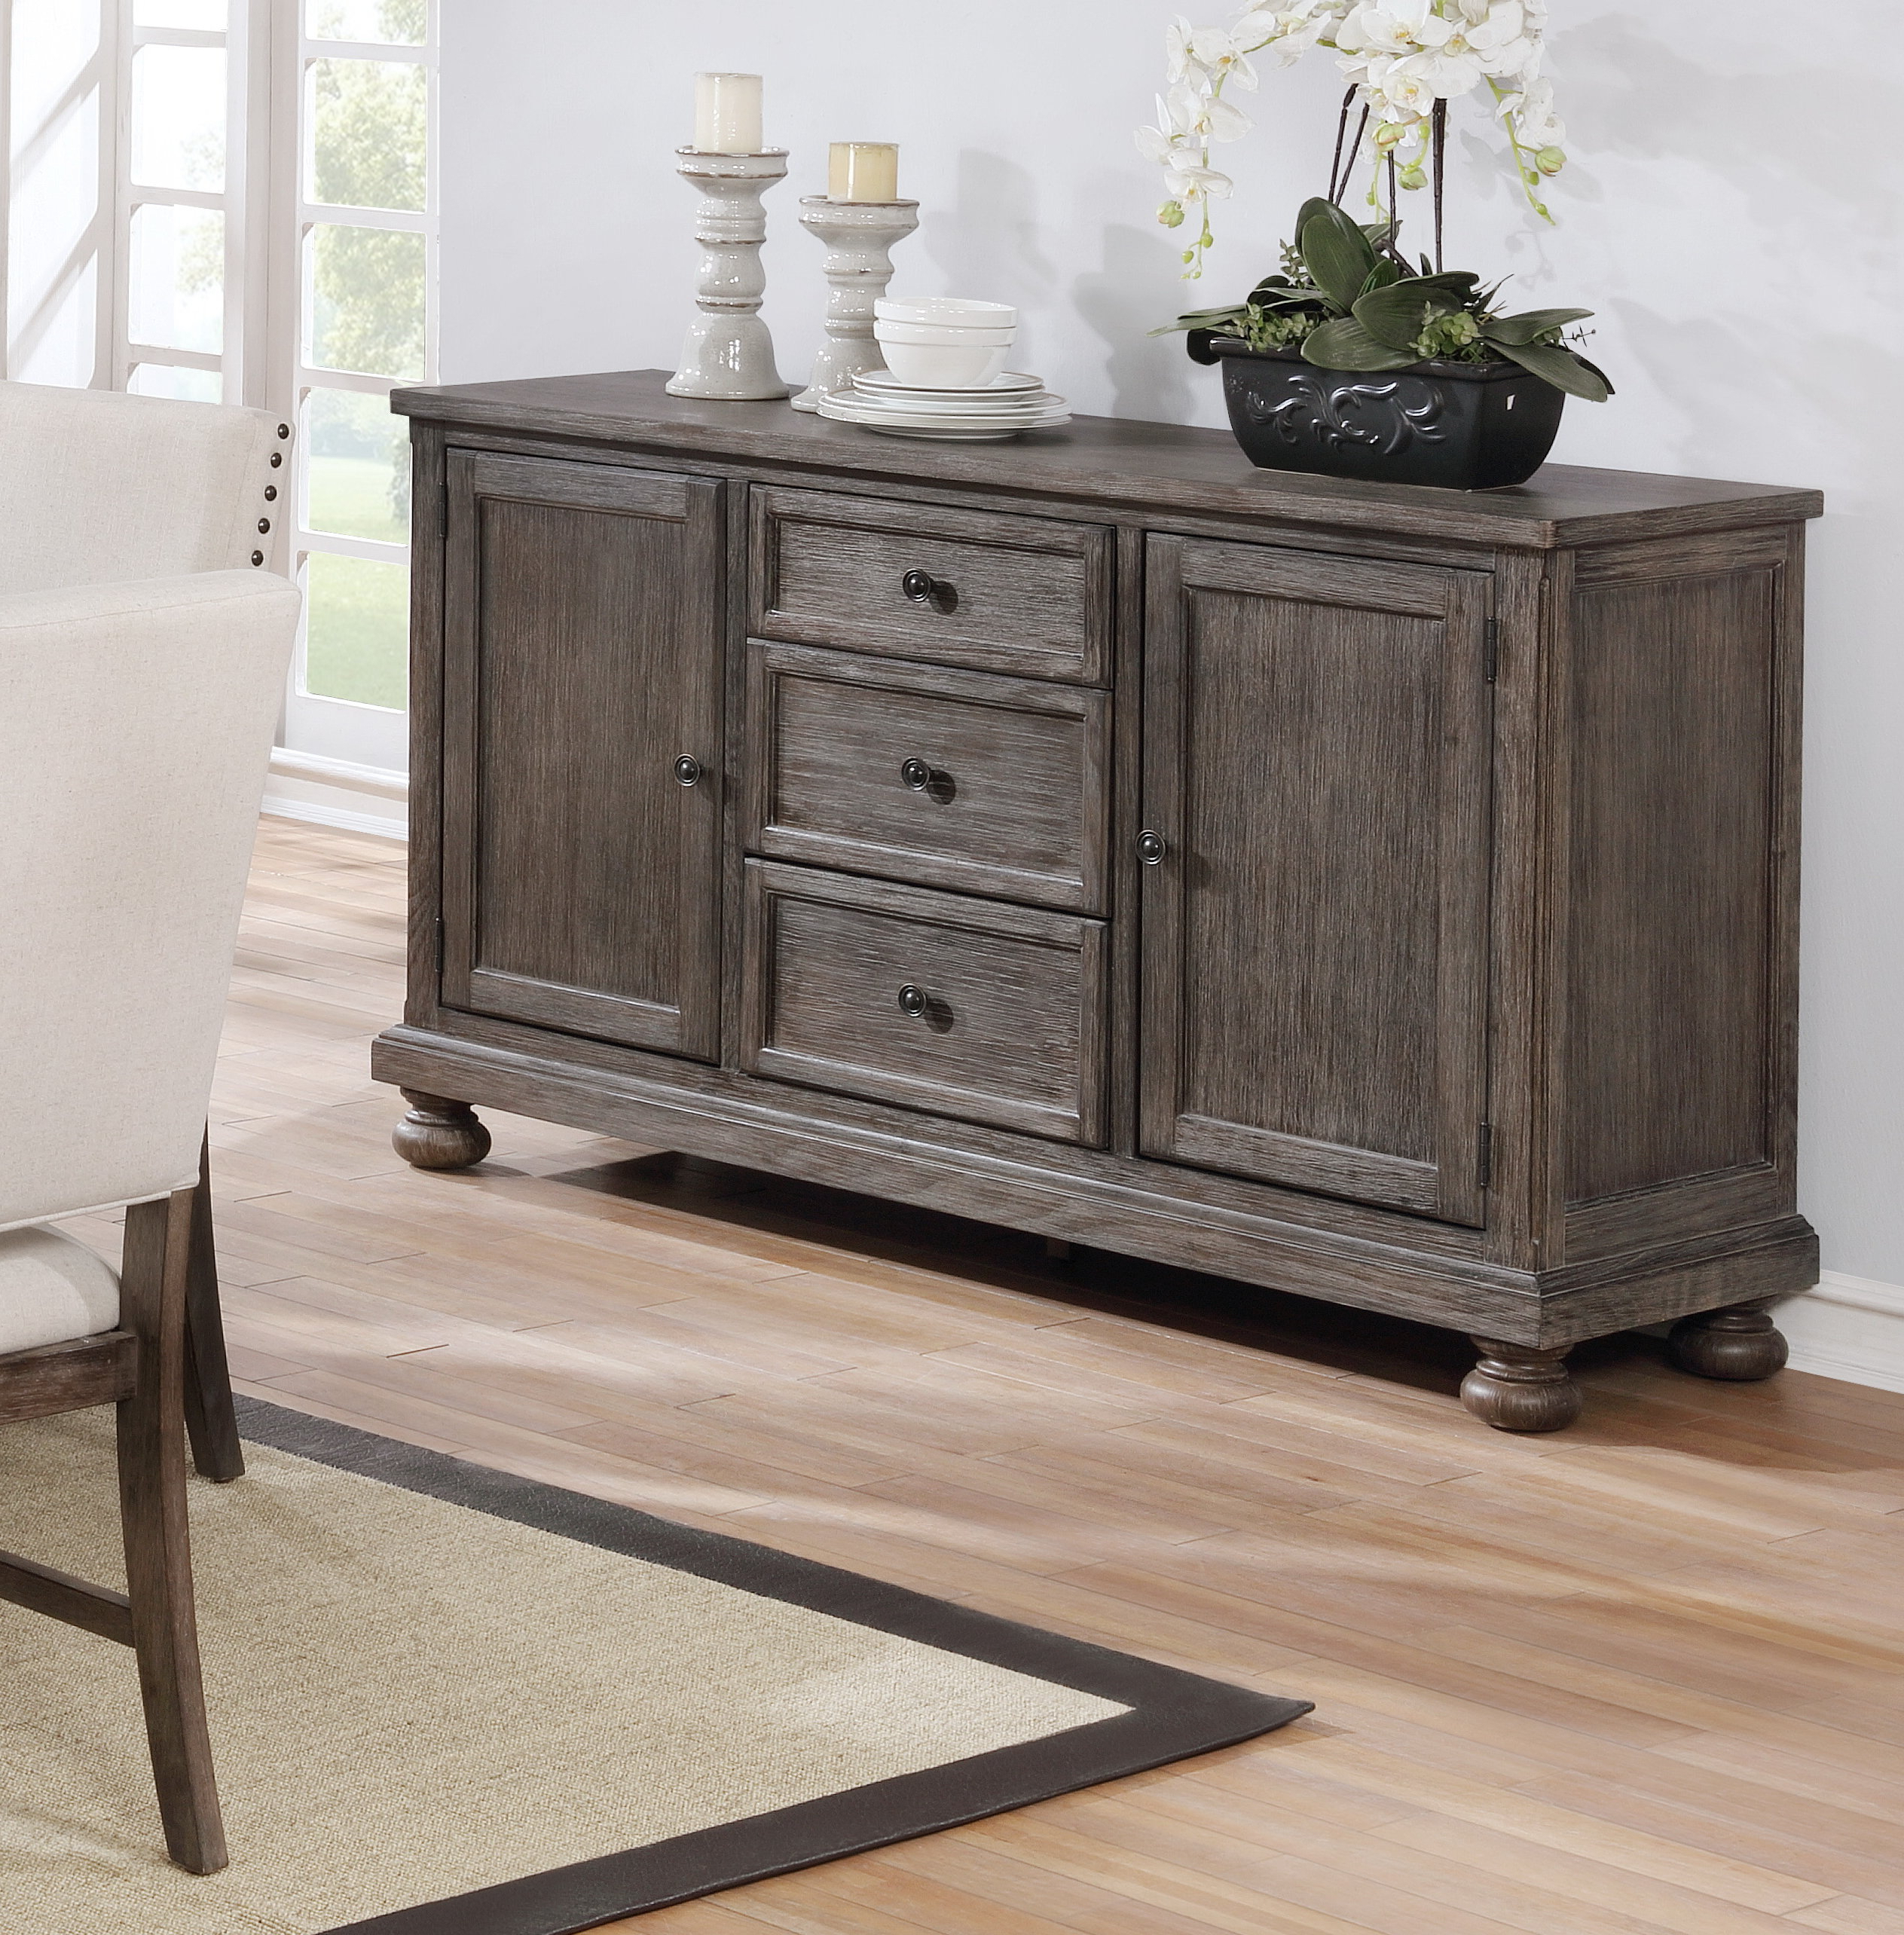 Antique Farmhouse Sideboard | Wayfair (View 12 of 20)